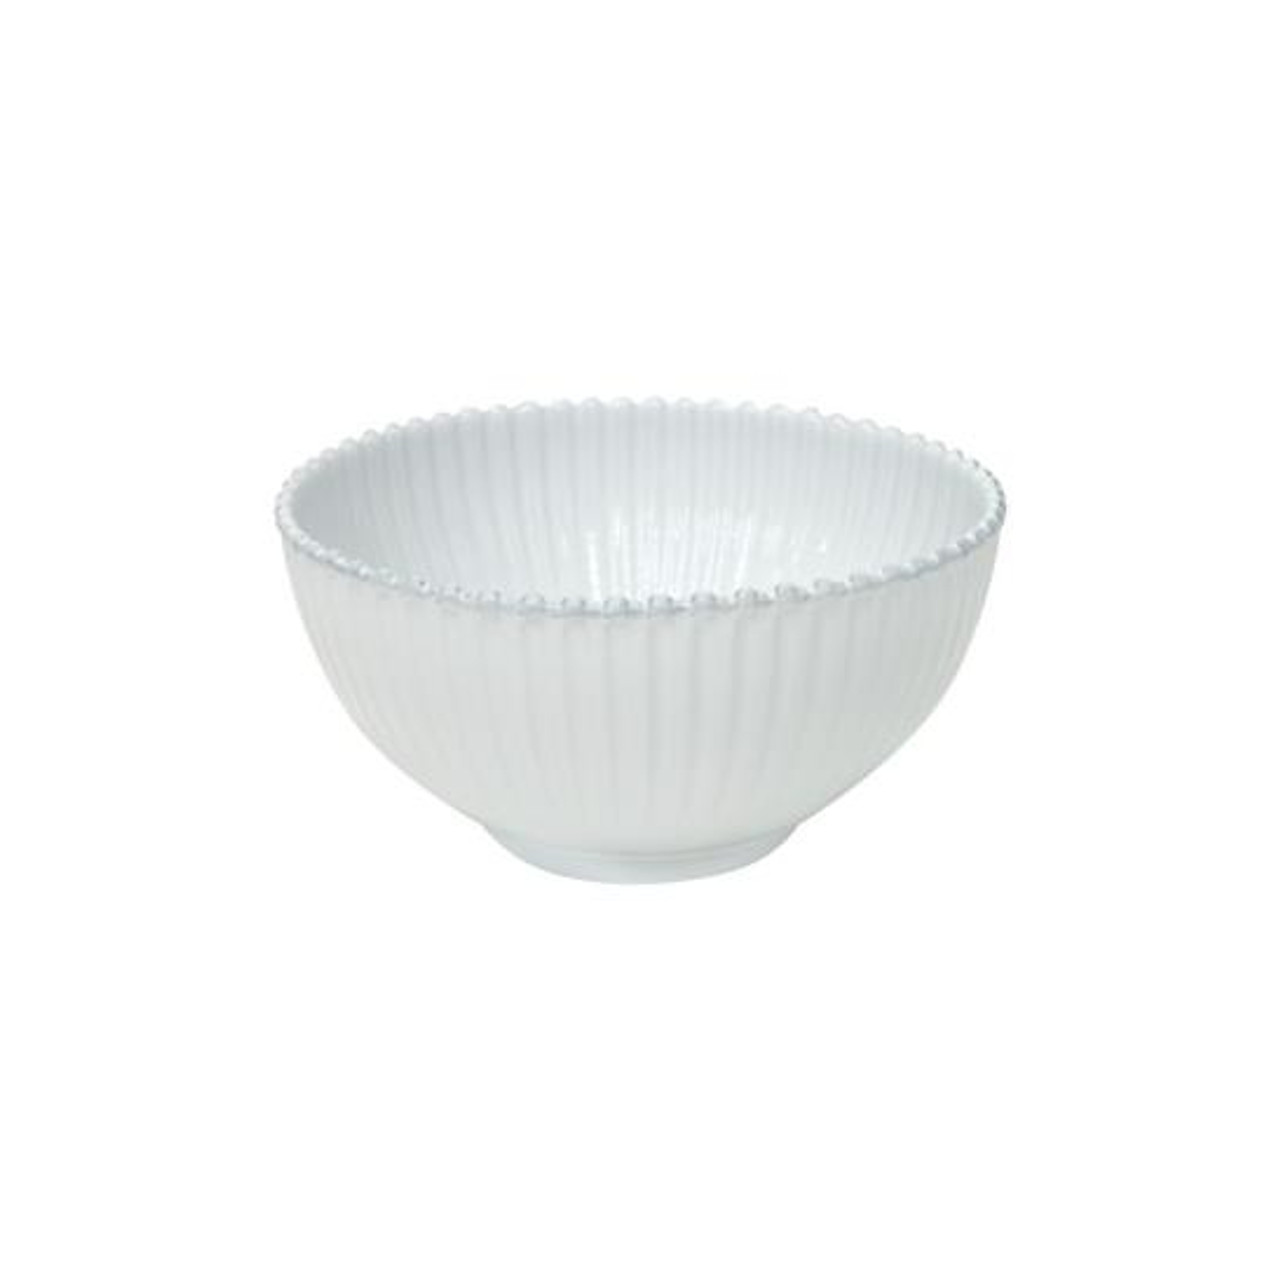 PEARL SALAD BOWL 27cm - WHITE